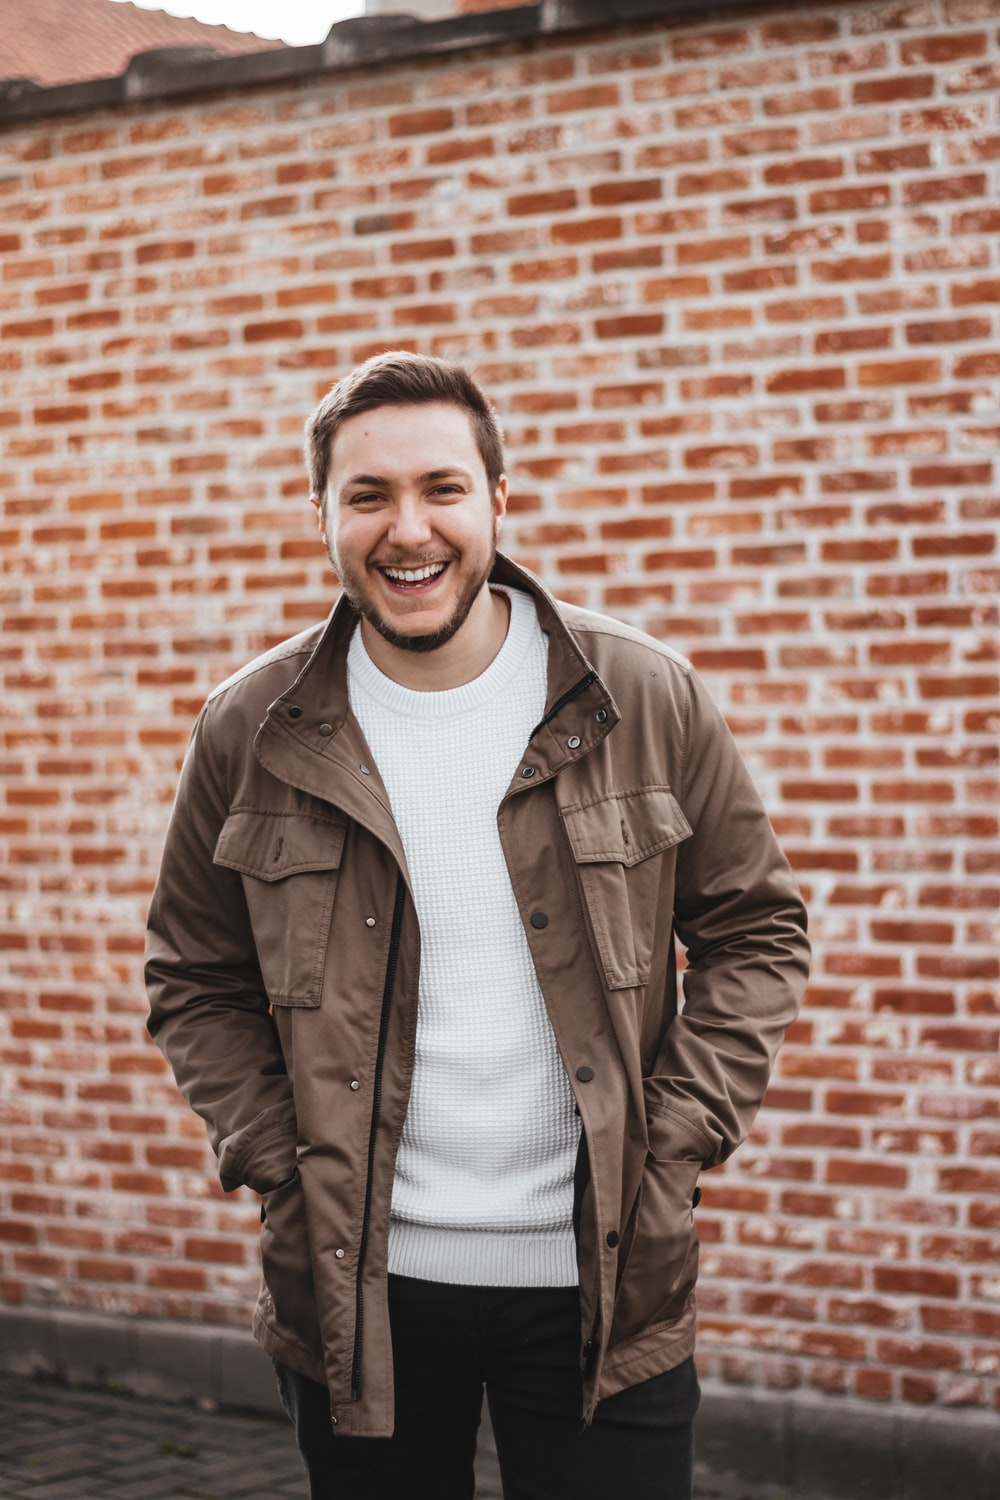 man in brown leather jacket smiling